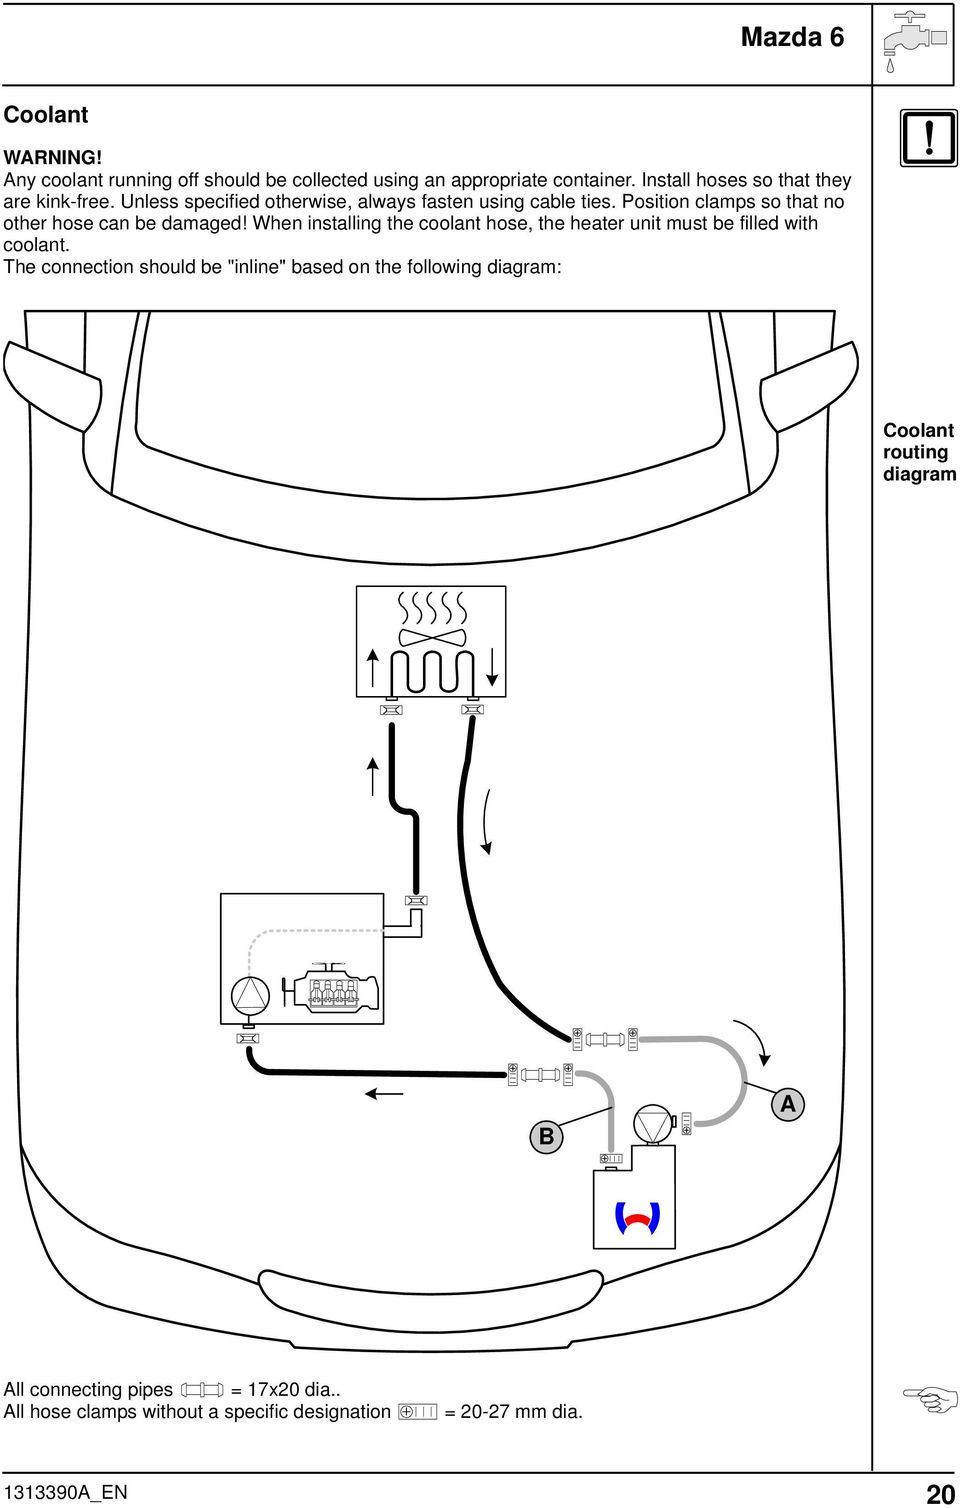 medium resolution of position clamps so that no other hose can be damaged when installing the coolant hose